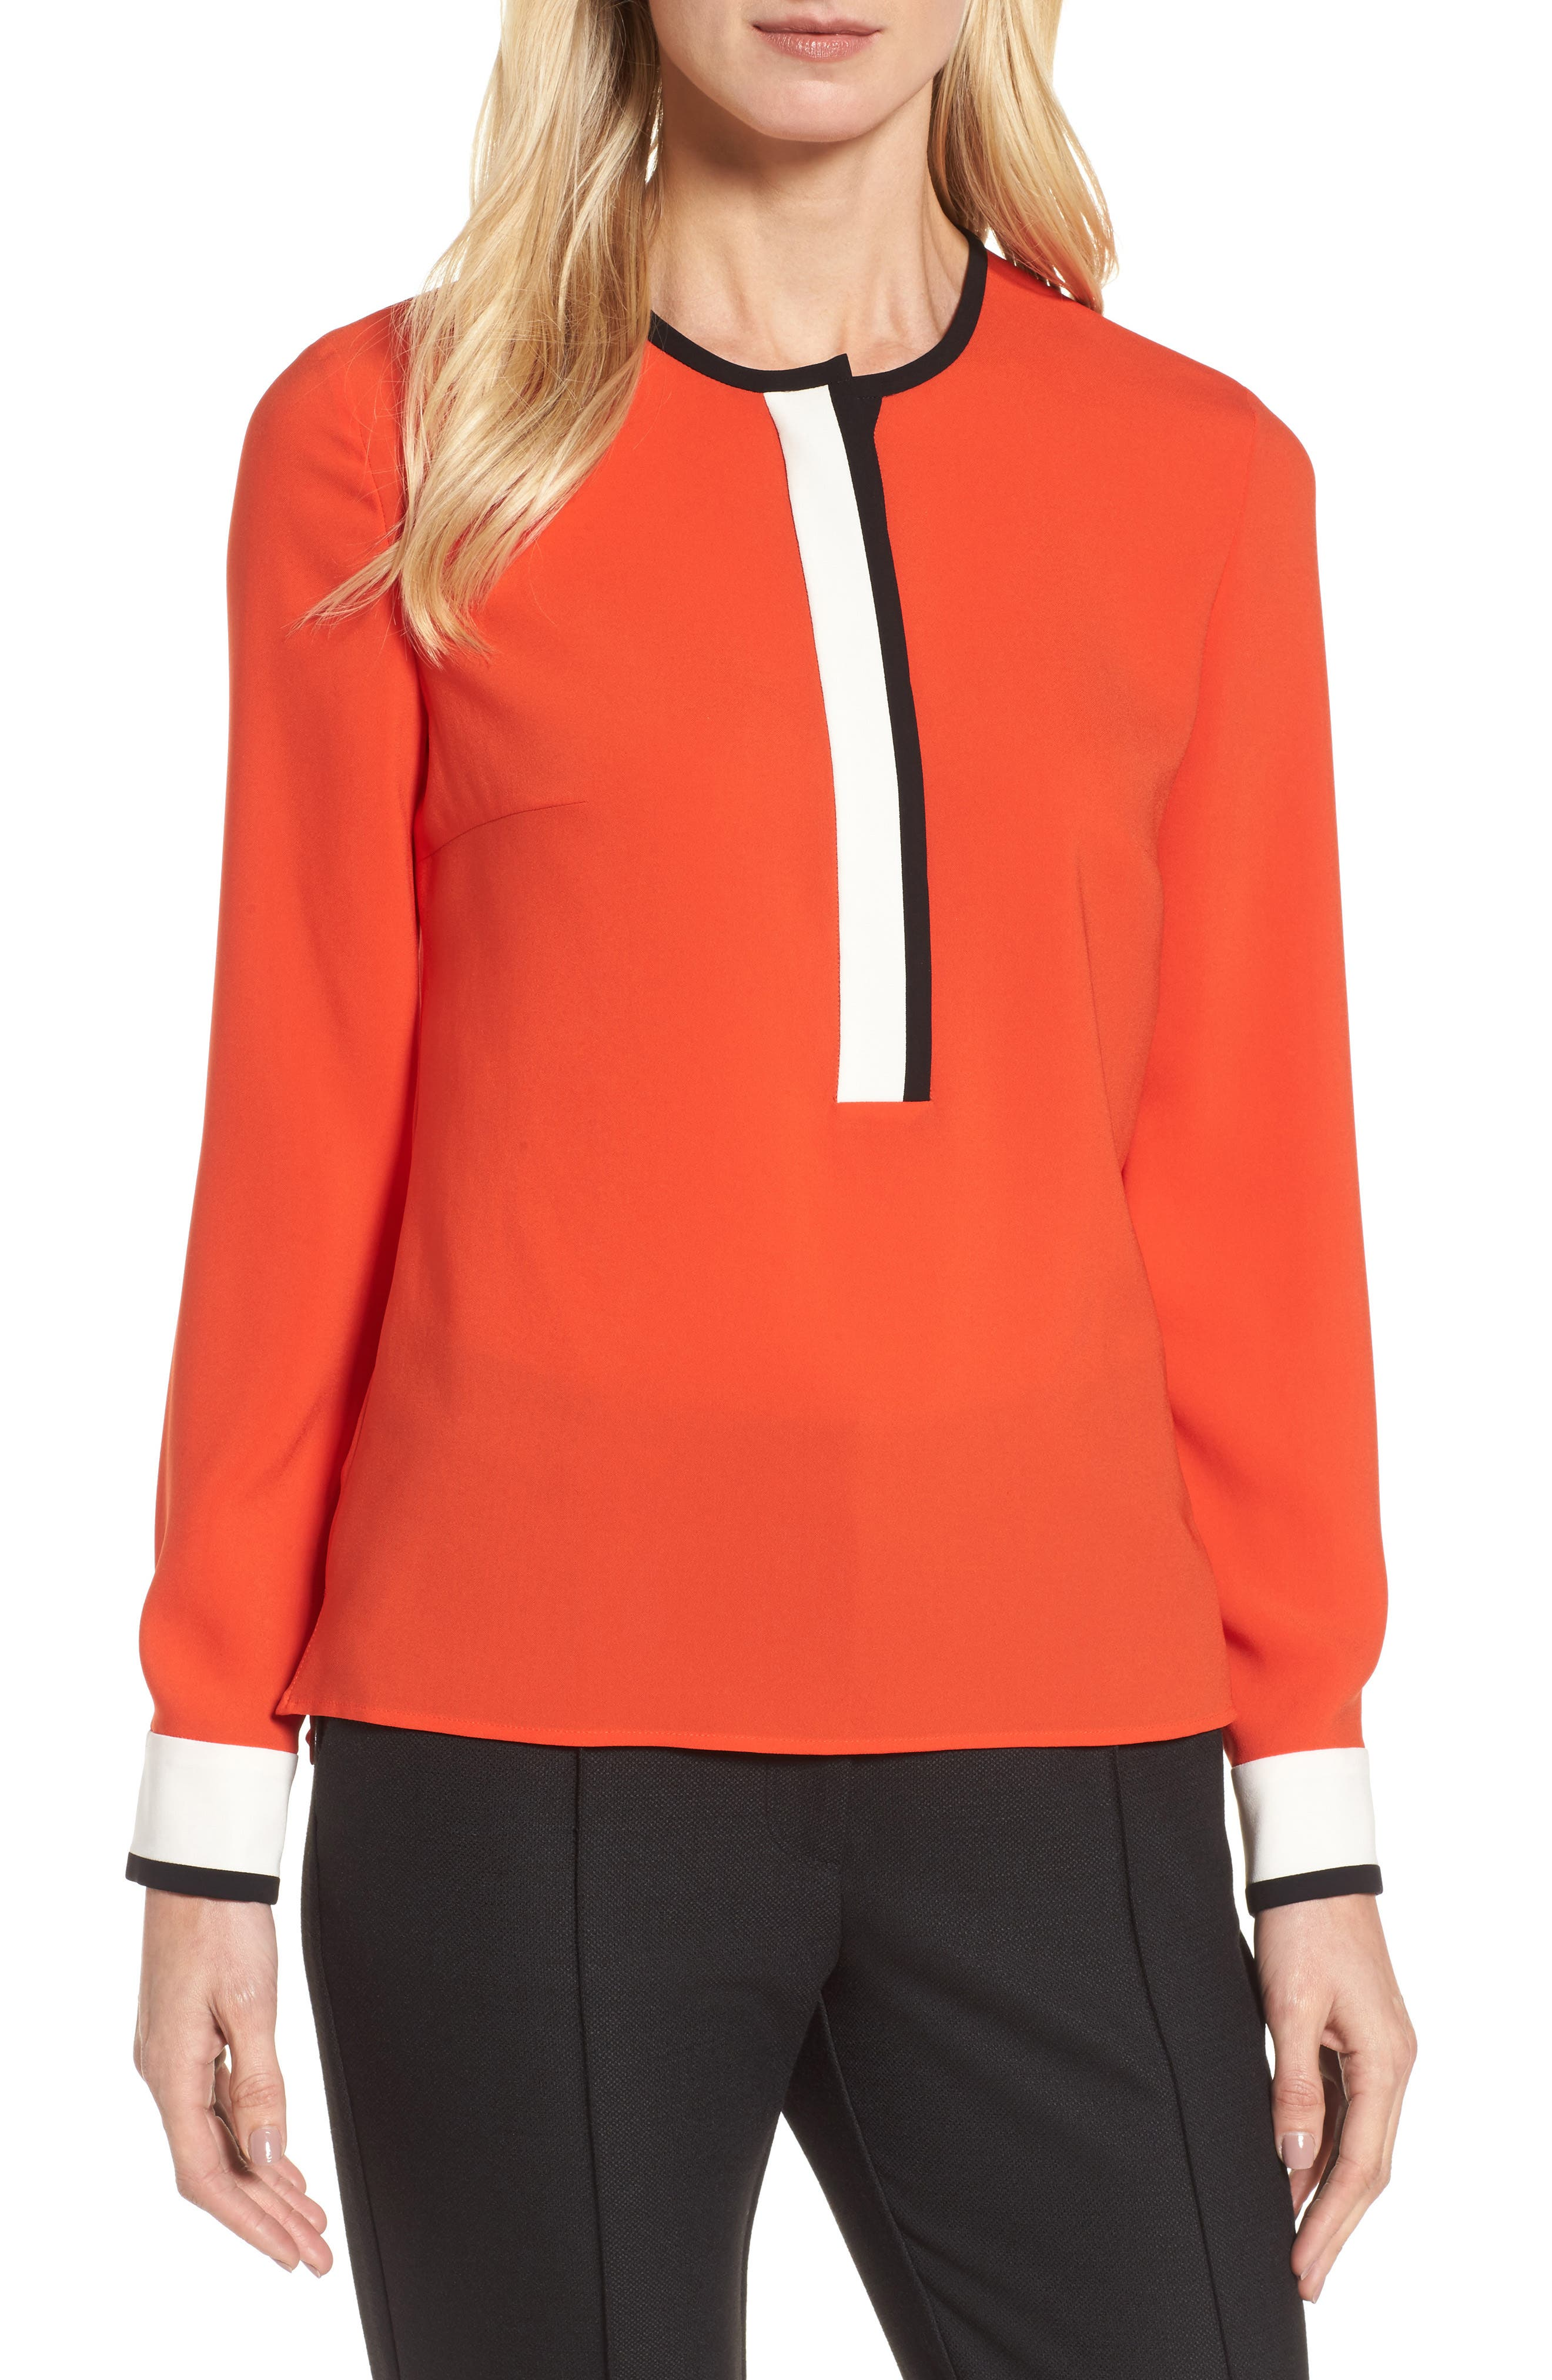 Alternate Image 1 Selected - BOSS Isolani Colorblock Top